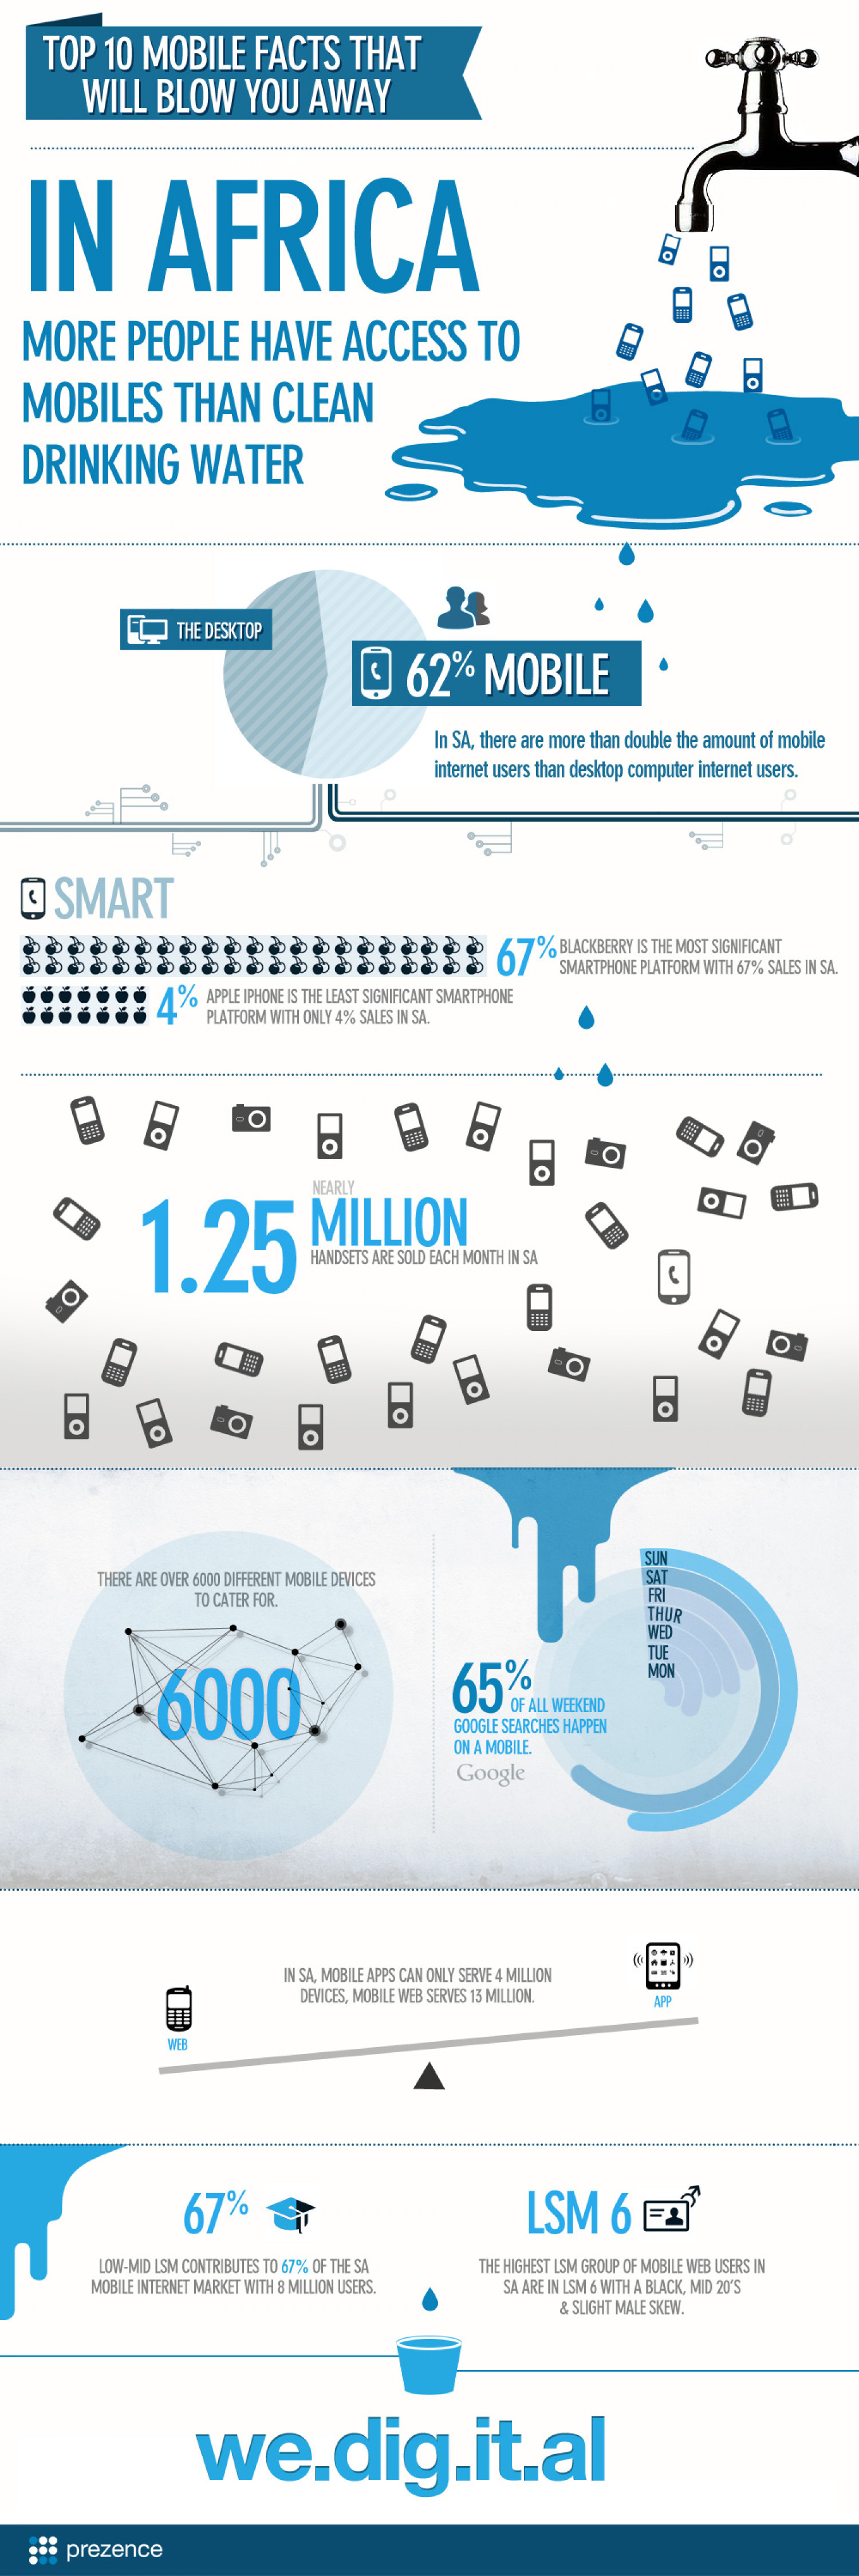 Top 10 Mobile facts that will blow you away Infographic